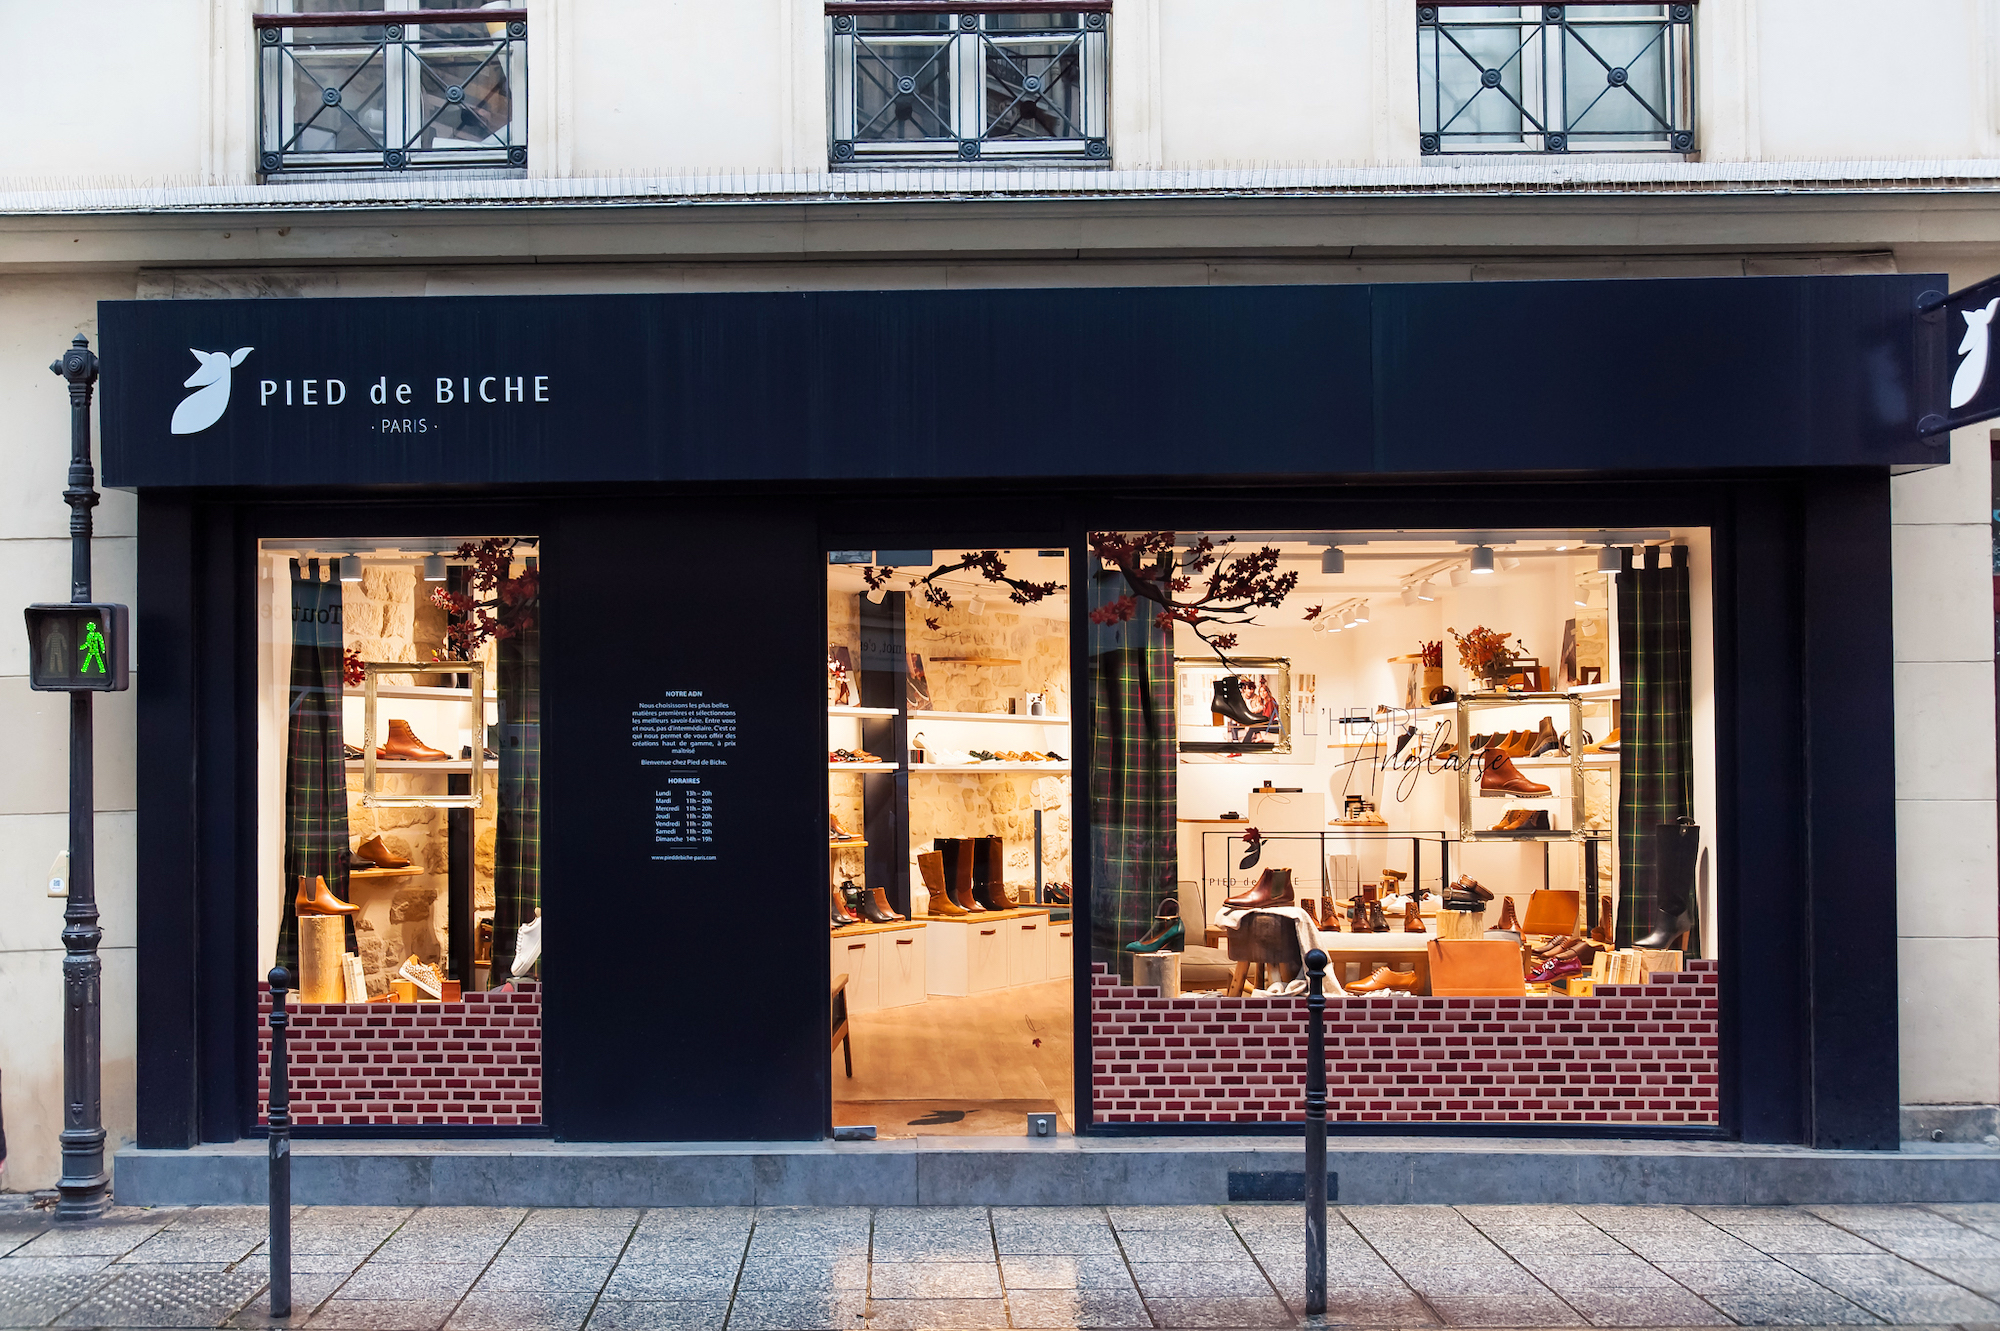 Petrol blue exterior of Pied de Biche stylish French shoes shop brand as night is falling.